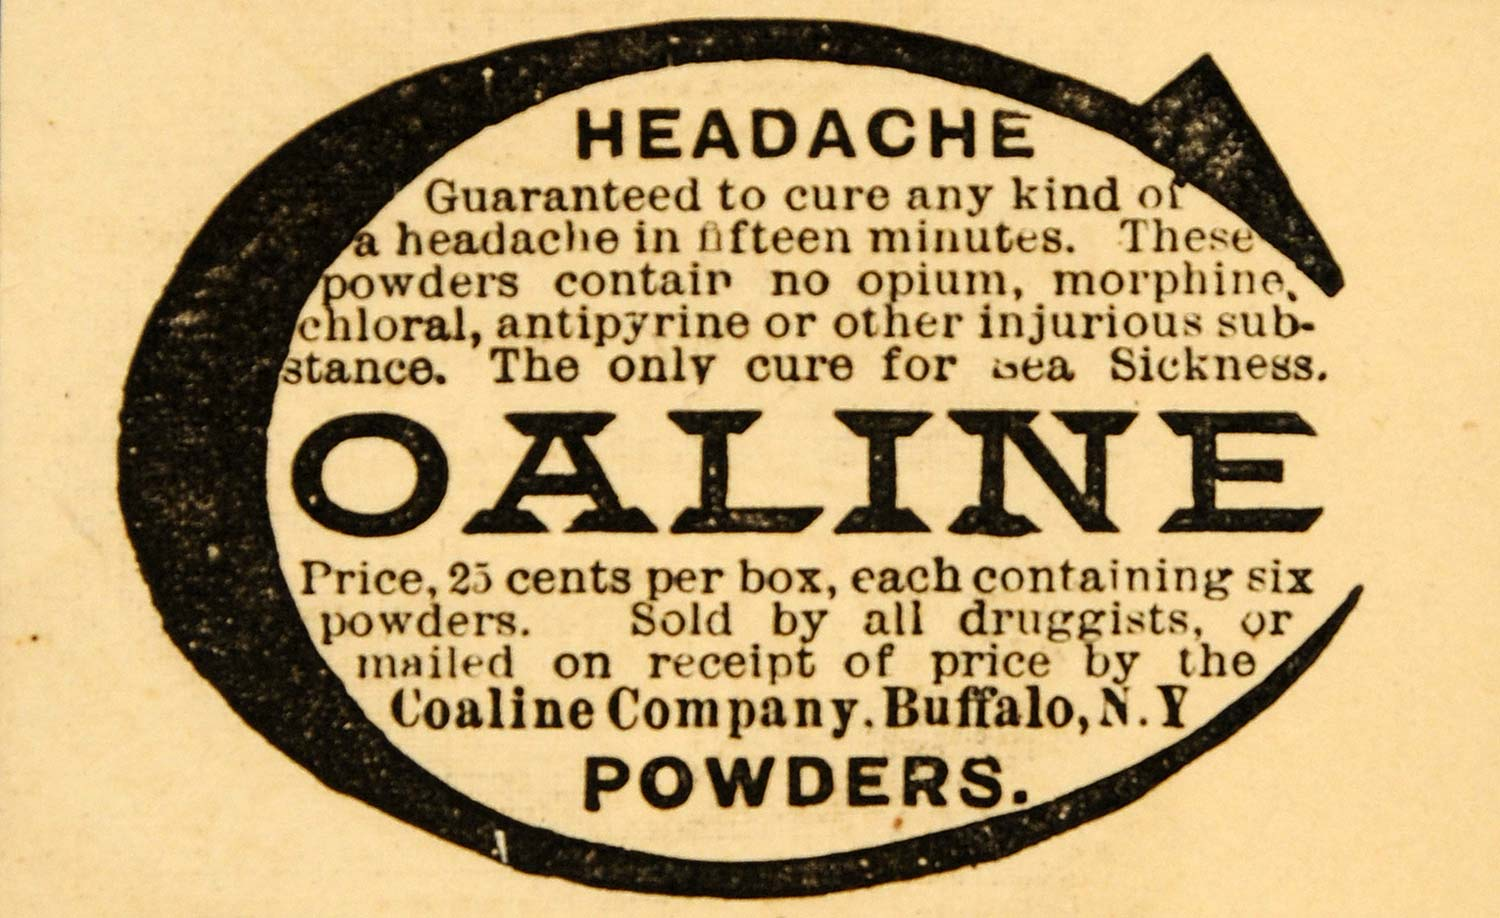 1890 Ad Coaline Powder Headache Seasick No Opium NY - ORIGINAL ADVERTISING HB1